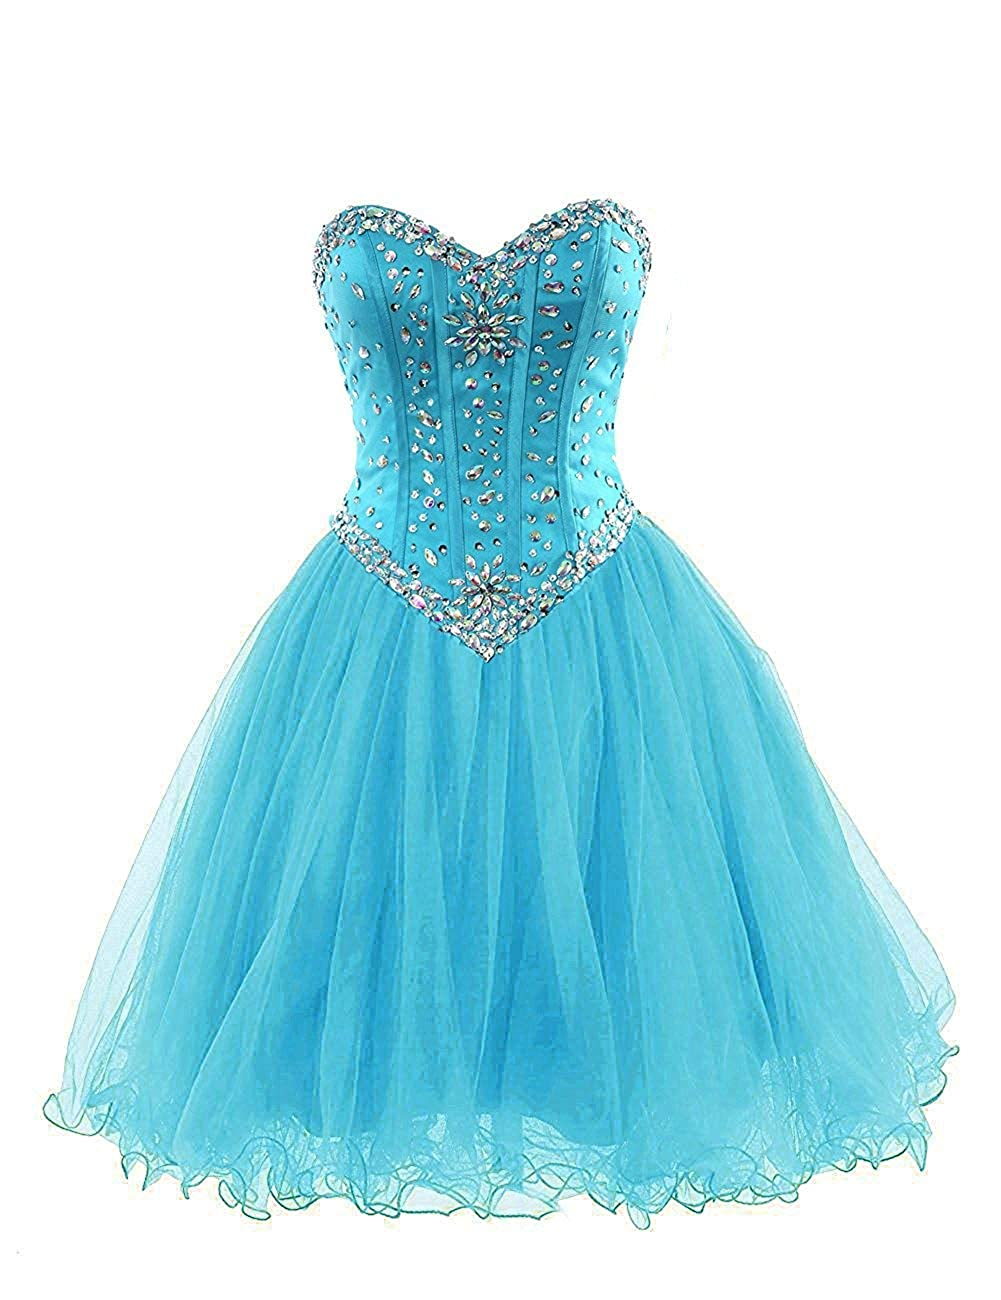 bluee Short Homecoming Dresses Tulle Sweetheart Prom Bridesmaid Dress Beaded Cocktail Prom Gowns